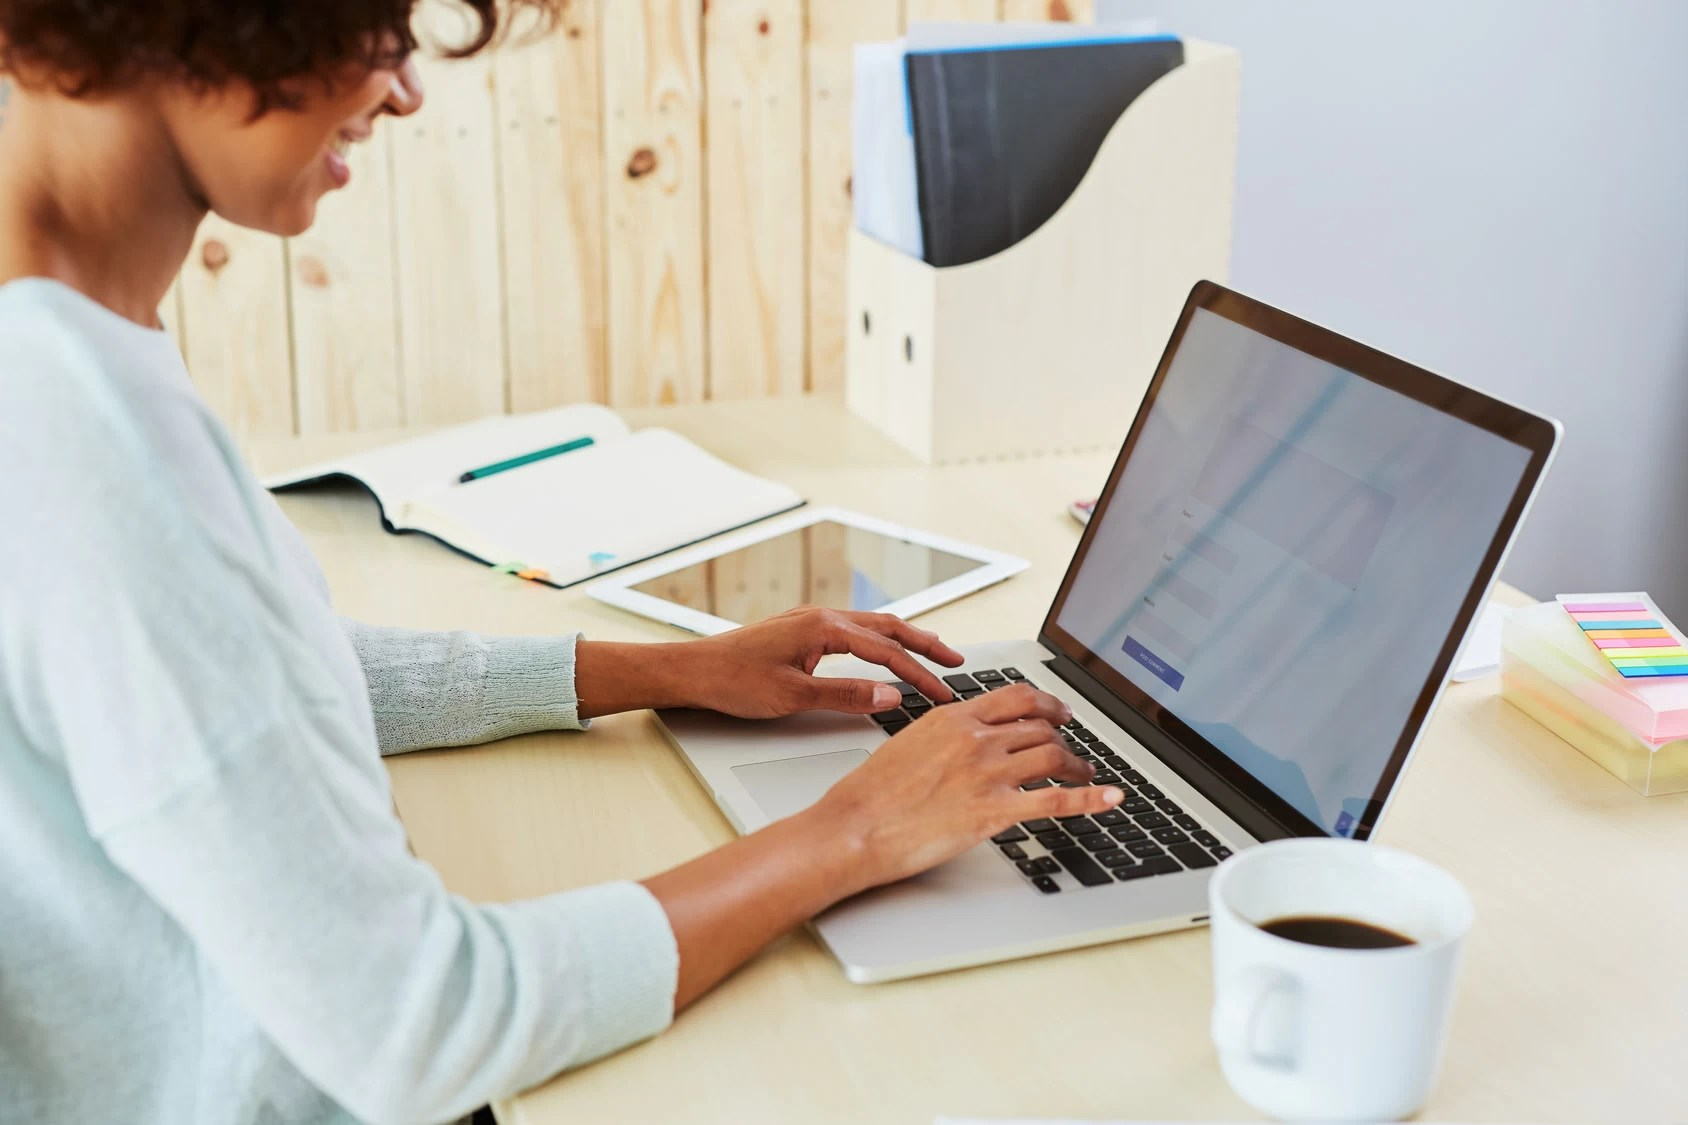 Woman using her laptop on her work desk